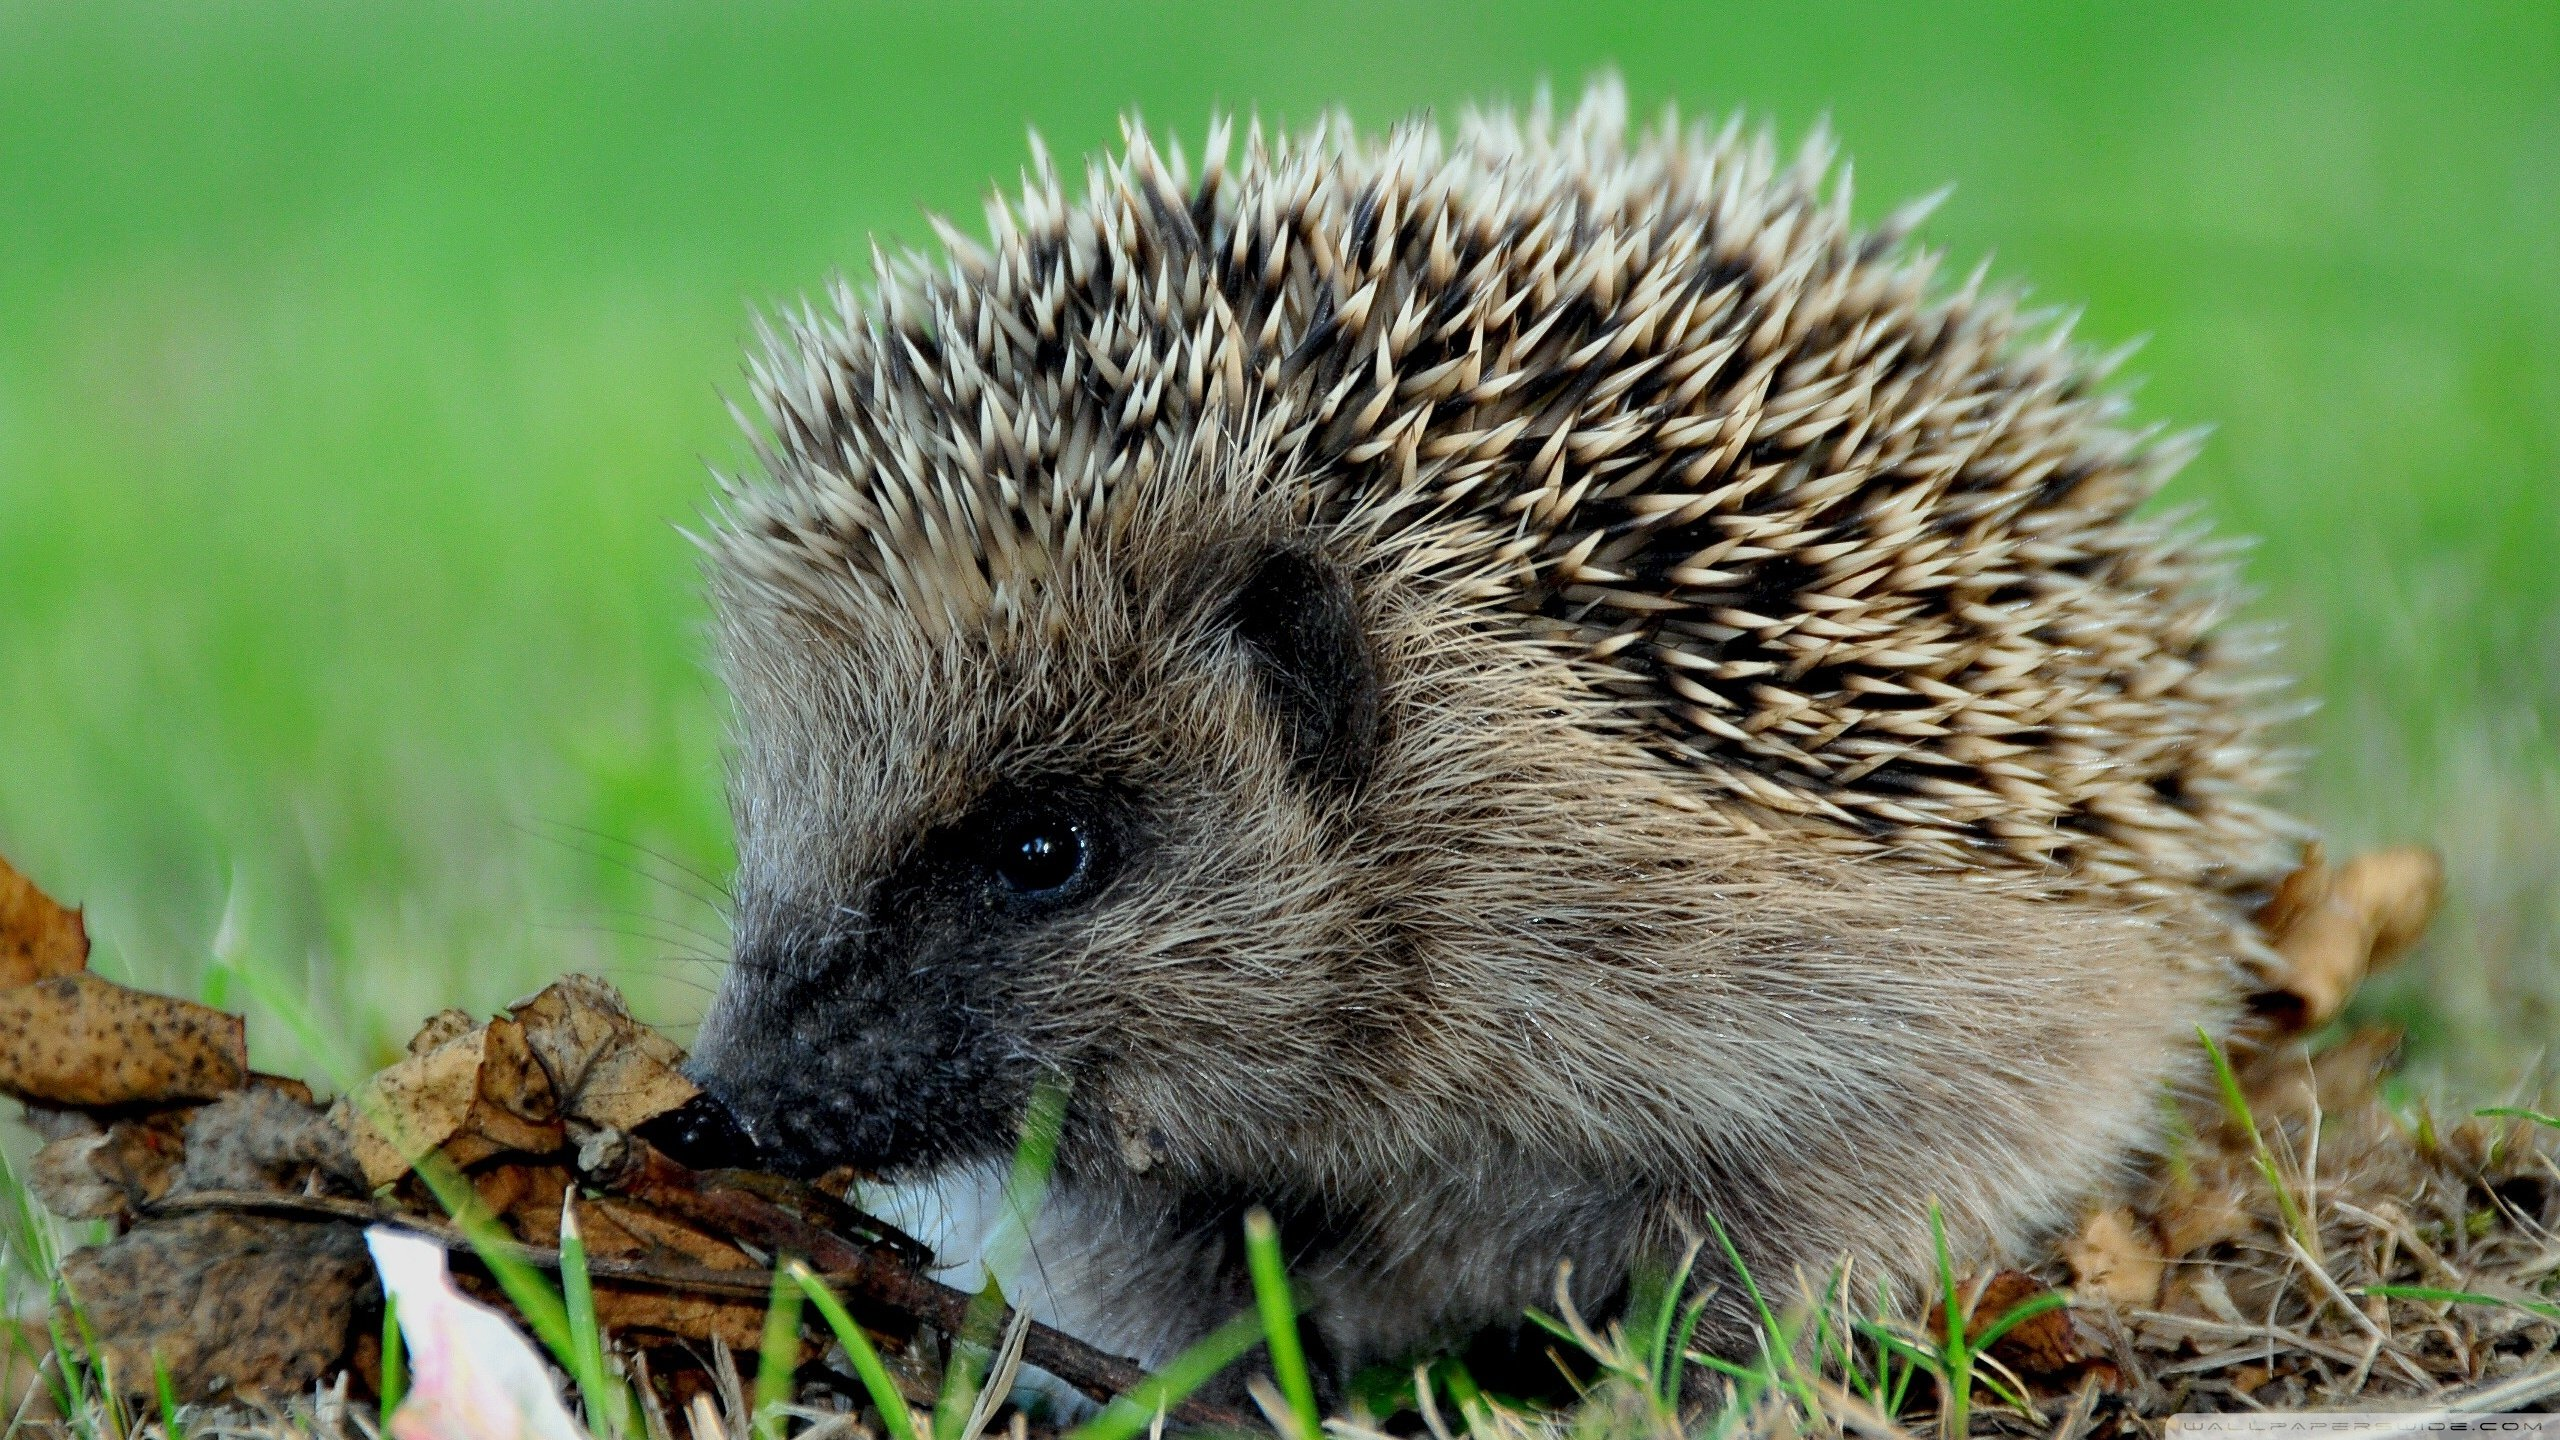 High resolution Hedgehog hd 2560x1440 background ID:241771 for PC